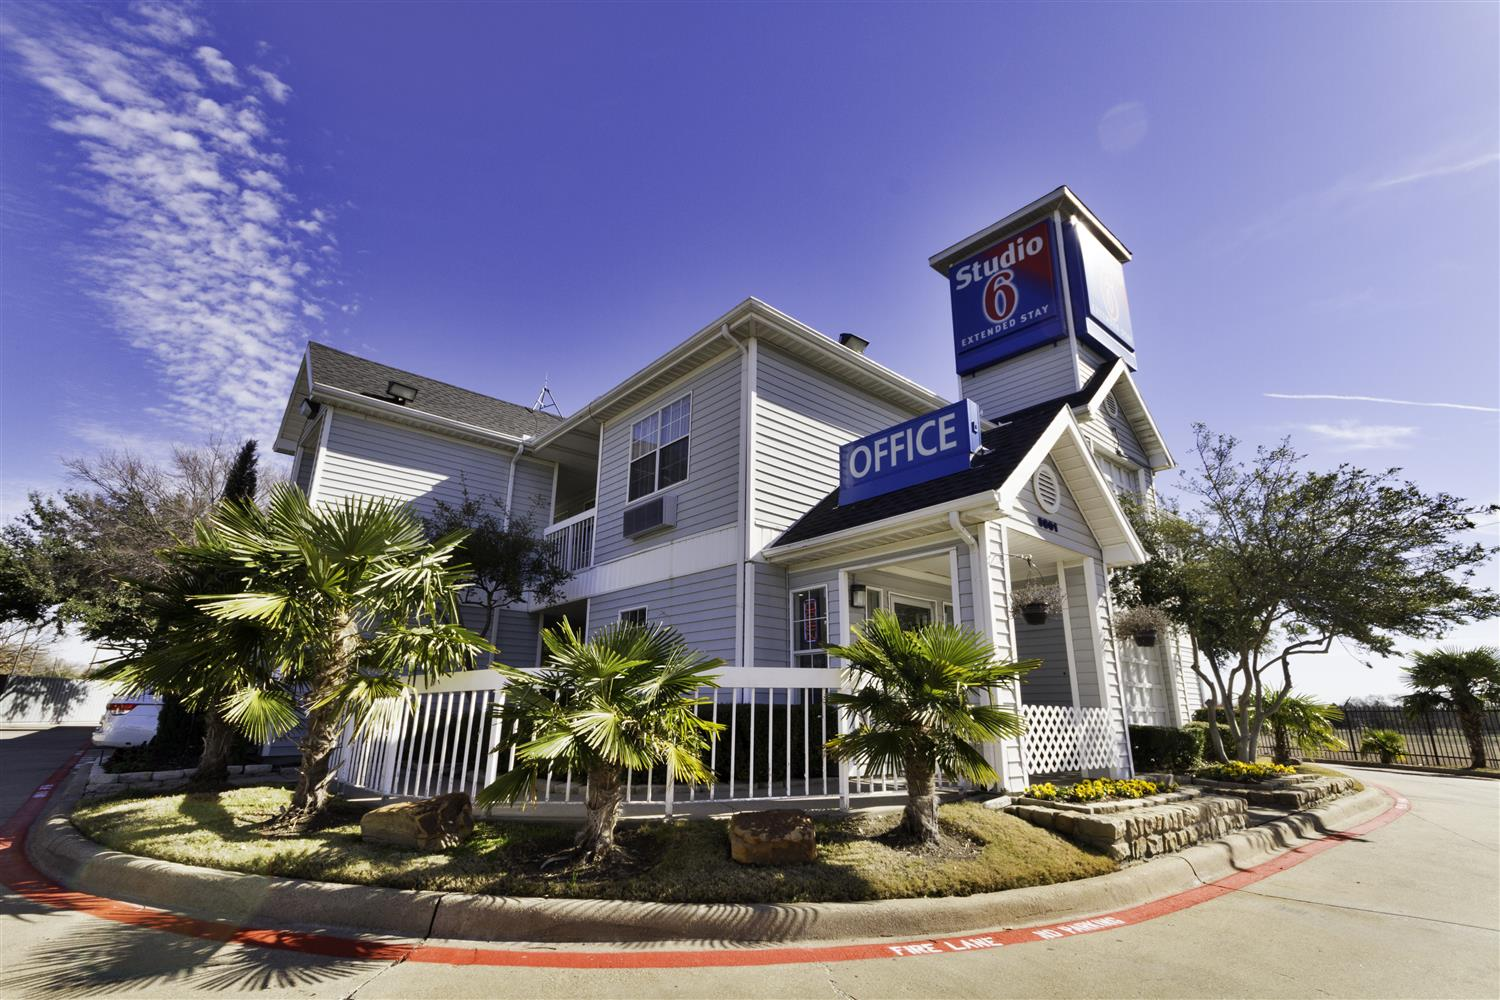 Studio 6 Extended Stay Hotel Garland Park Dallas Tx See